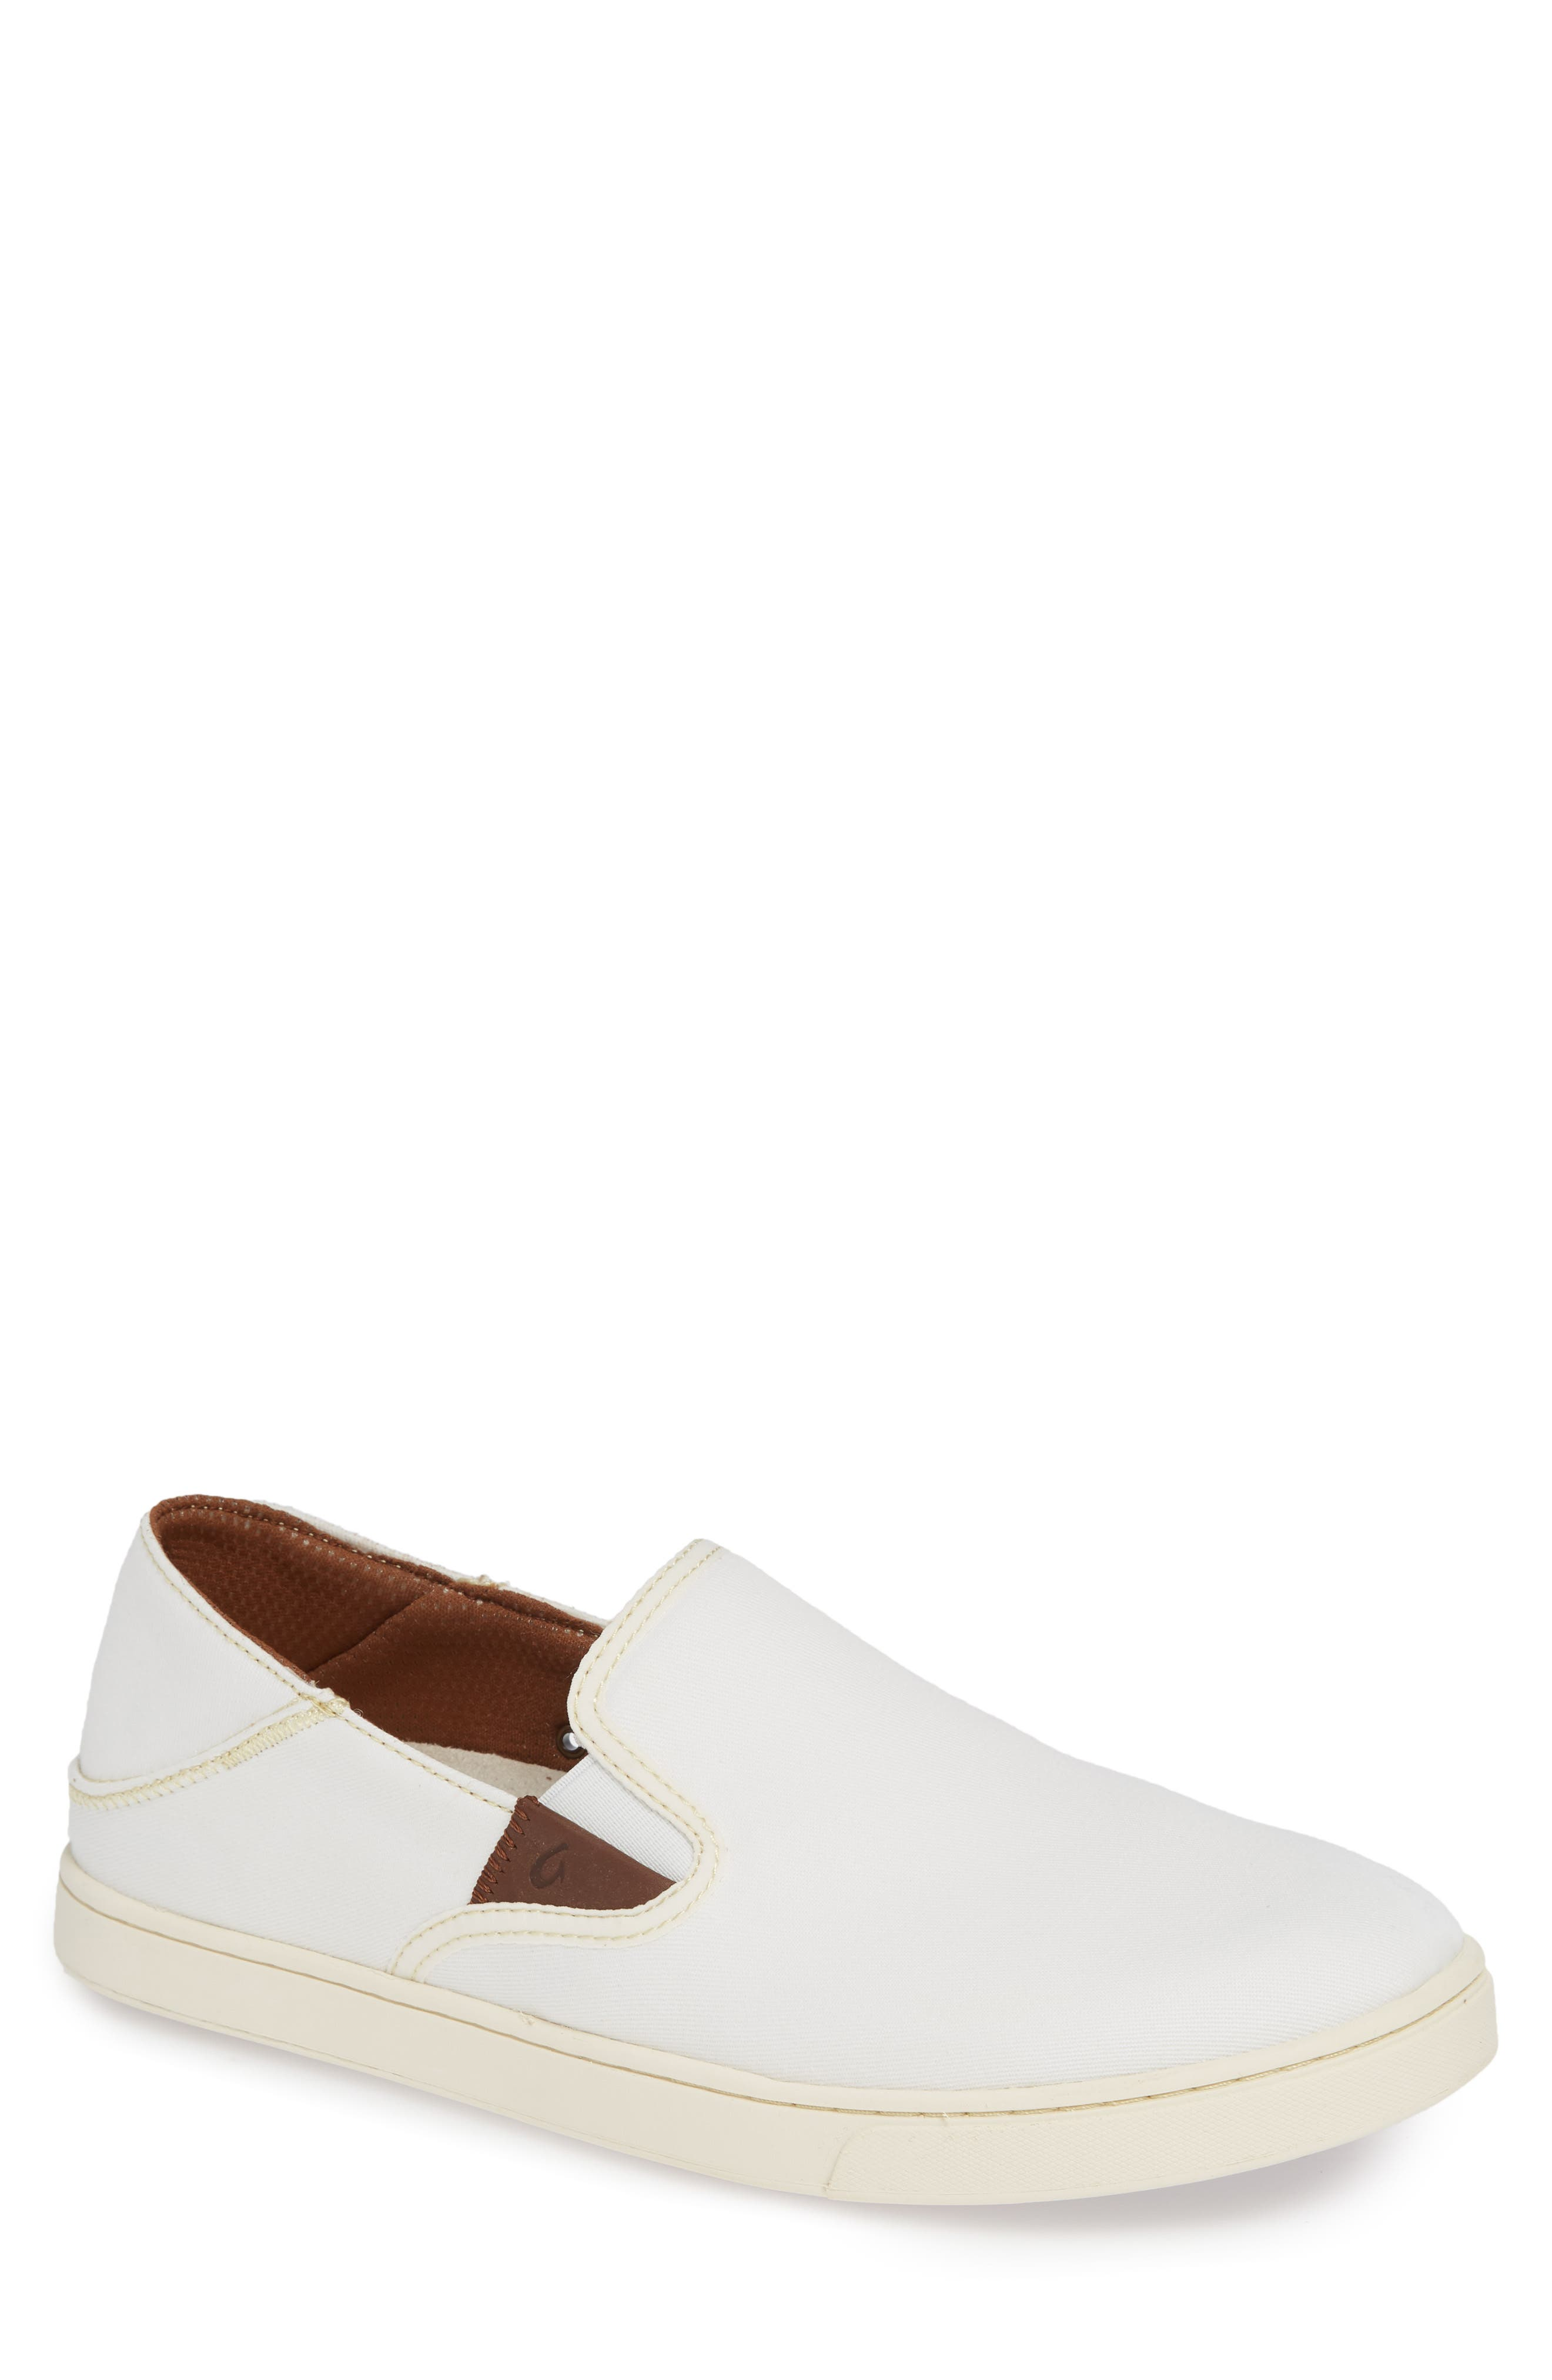 Kahu Collapsible Slip-On Sneaker,                         Main,                         color, OFF WHITE/ OFF WHITE TEXTILE